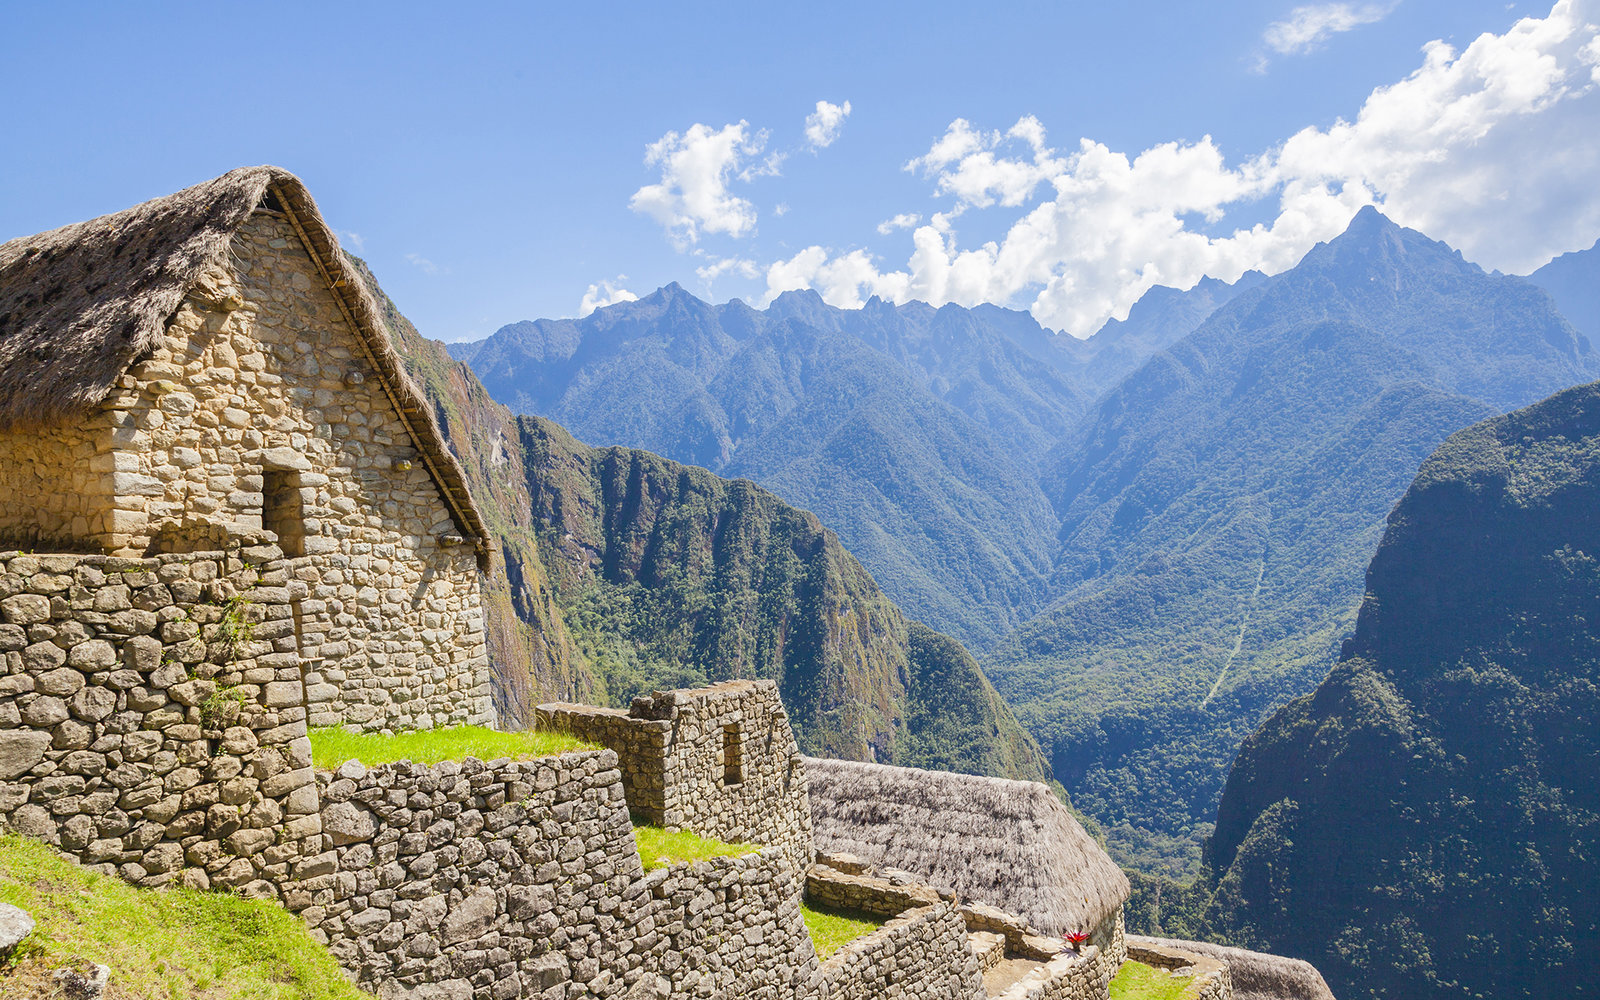 Peru, Machu Picchu, View of Machu Picchu. (Photo by: JTB/UIG via Getty Images) (Photo by: JTB Photo/UIG via Getty Images)